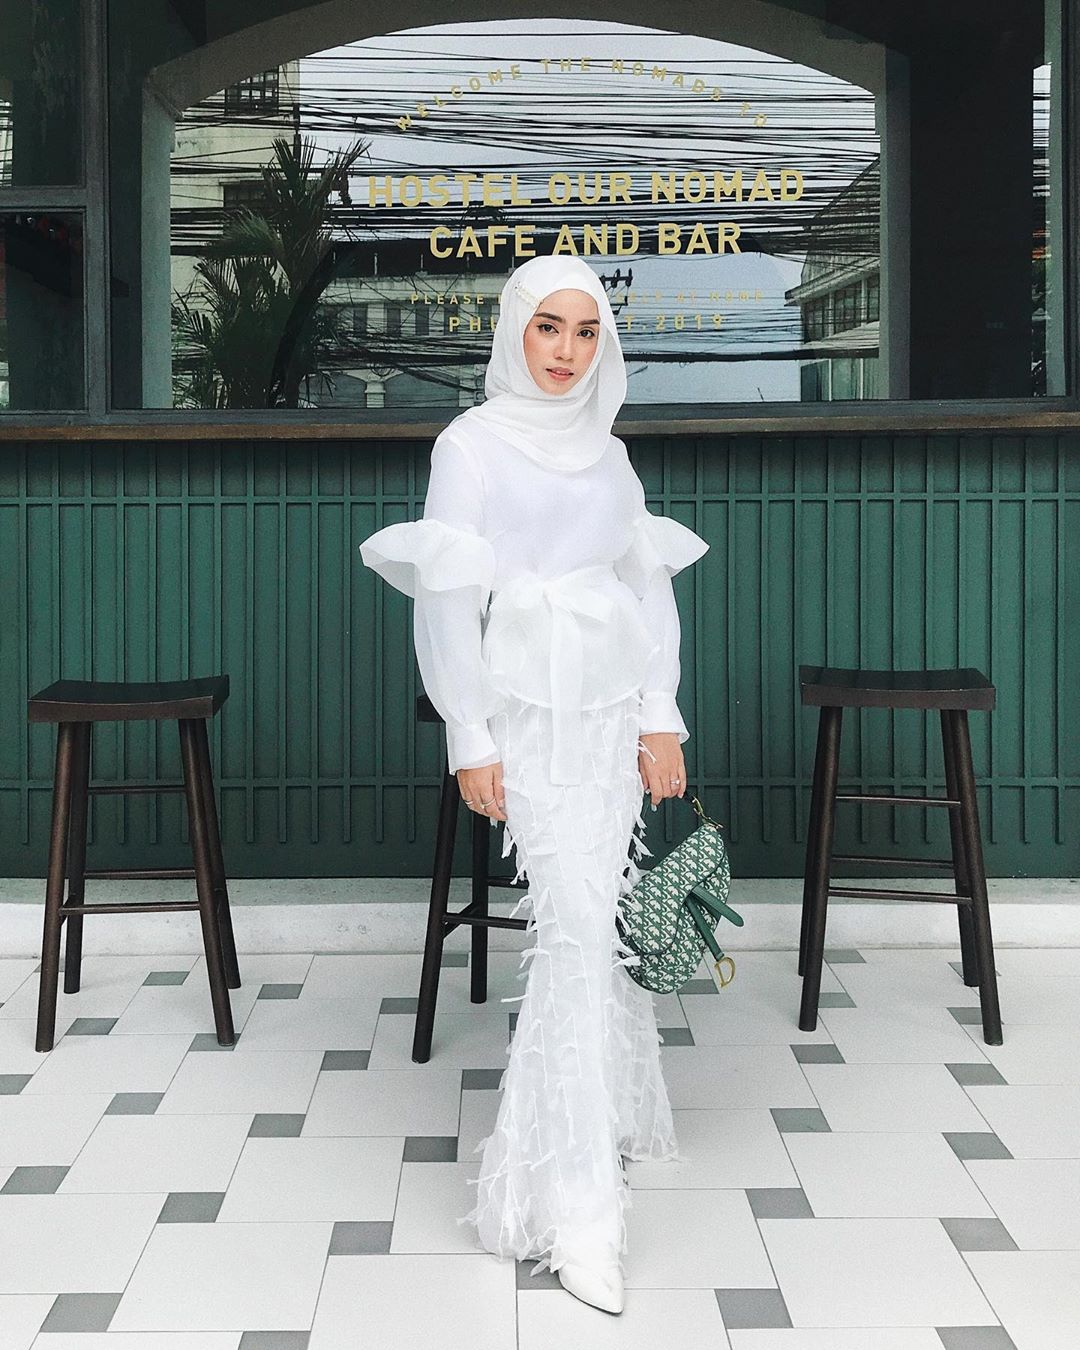 @_.hnhn wearing  Balloon Sleeves Kurung Set